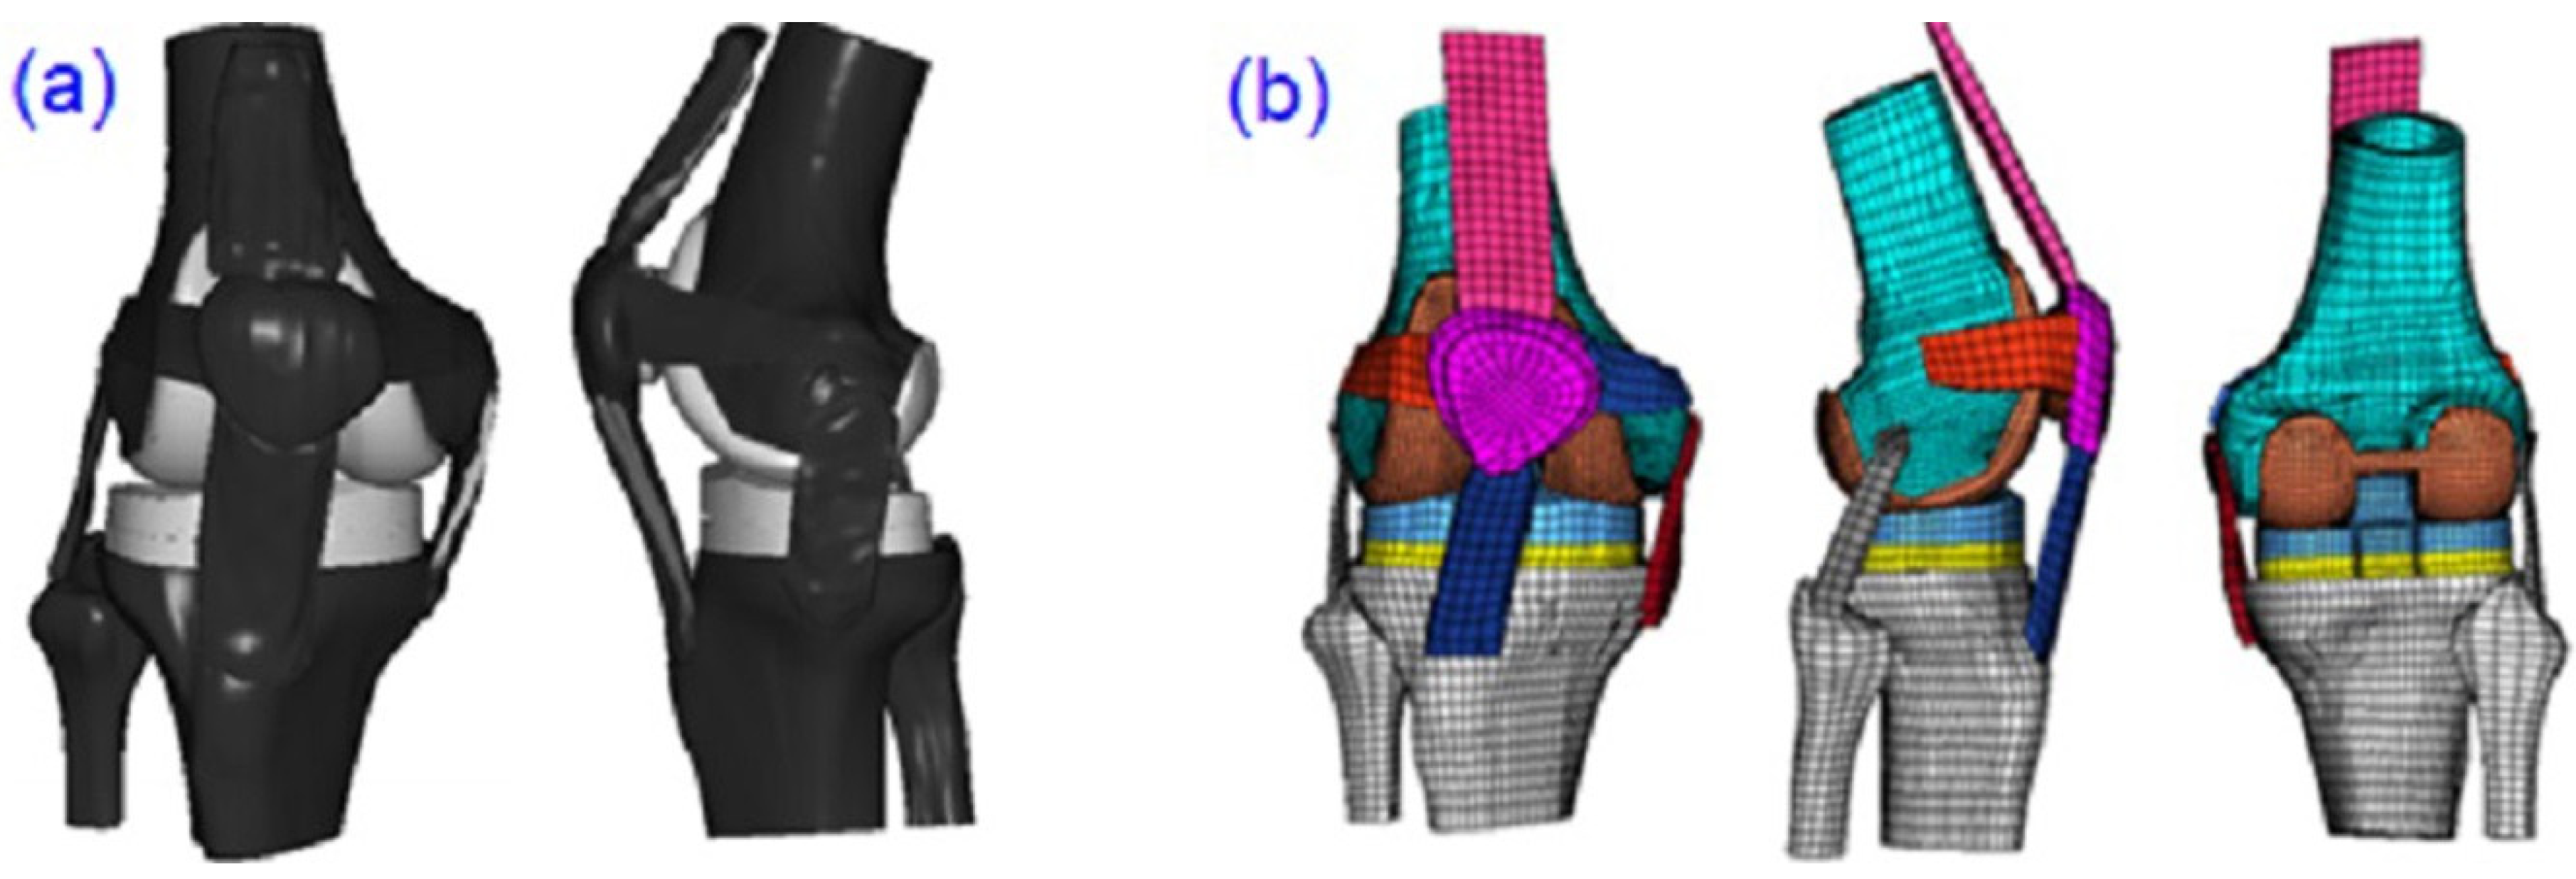 Applied Sciences | Free Full-Text | The Effect of Patellar